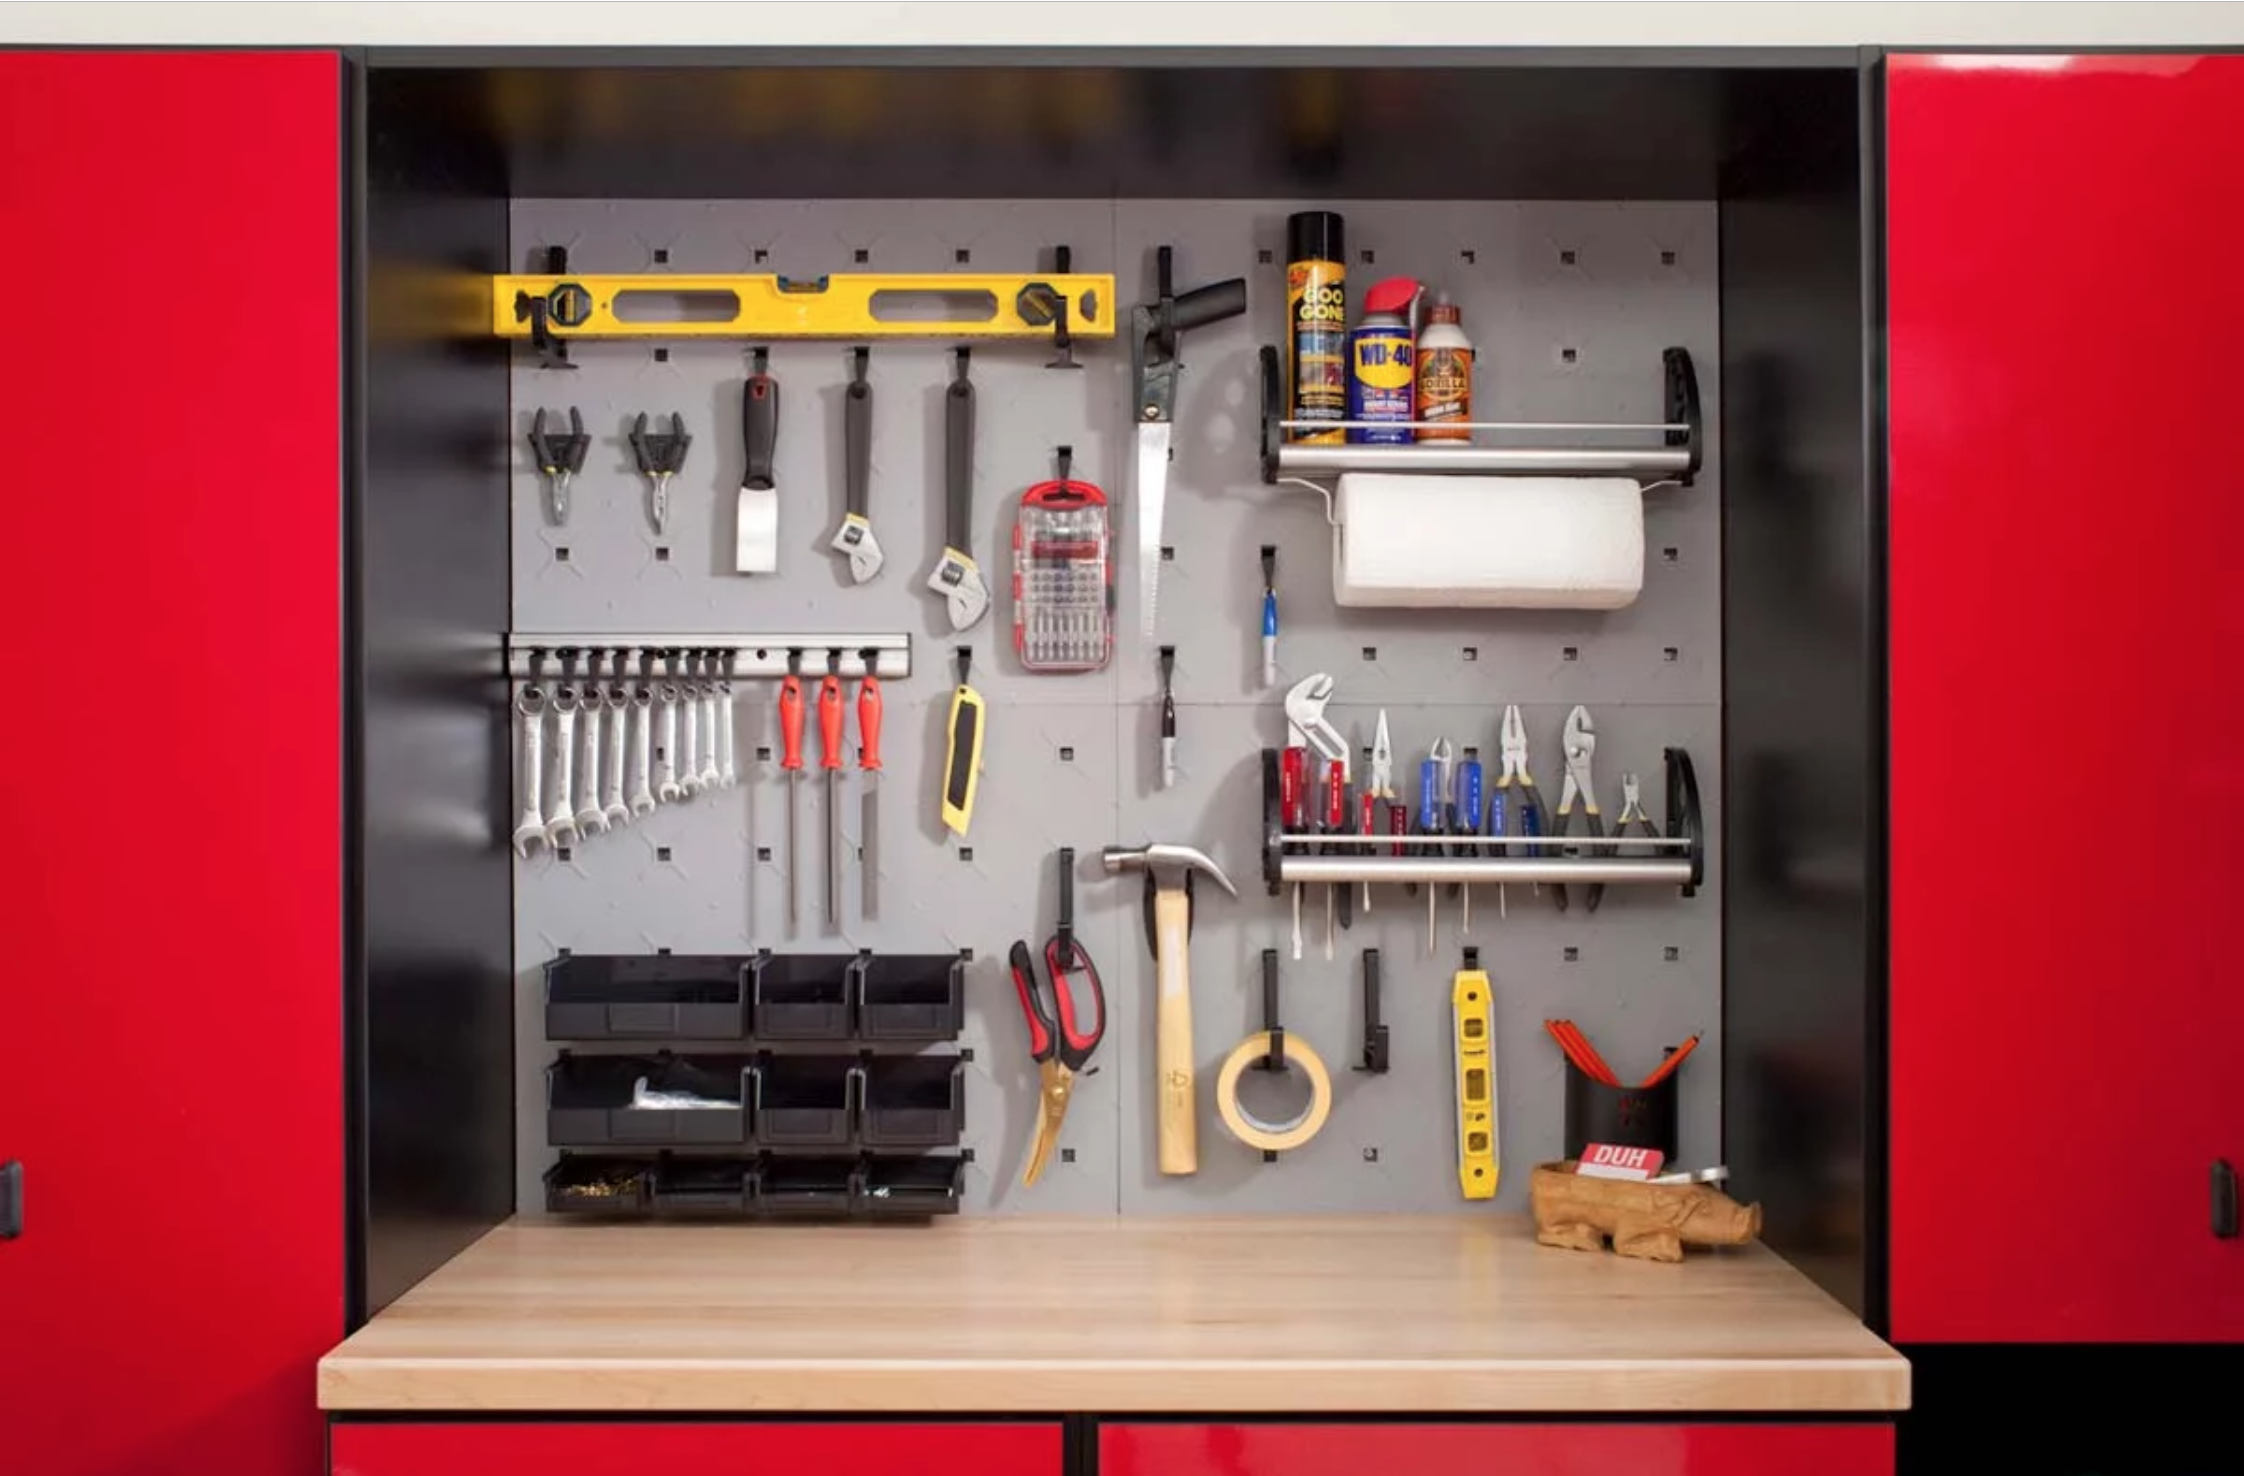 Wall mount system storing a variety of tools and supplies